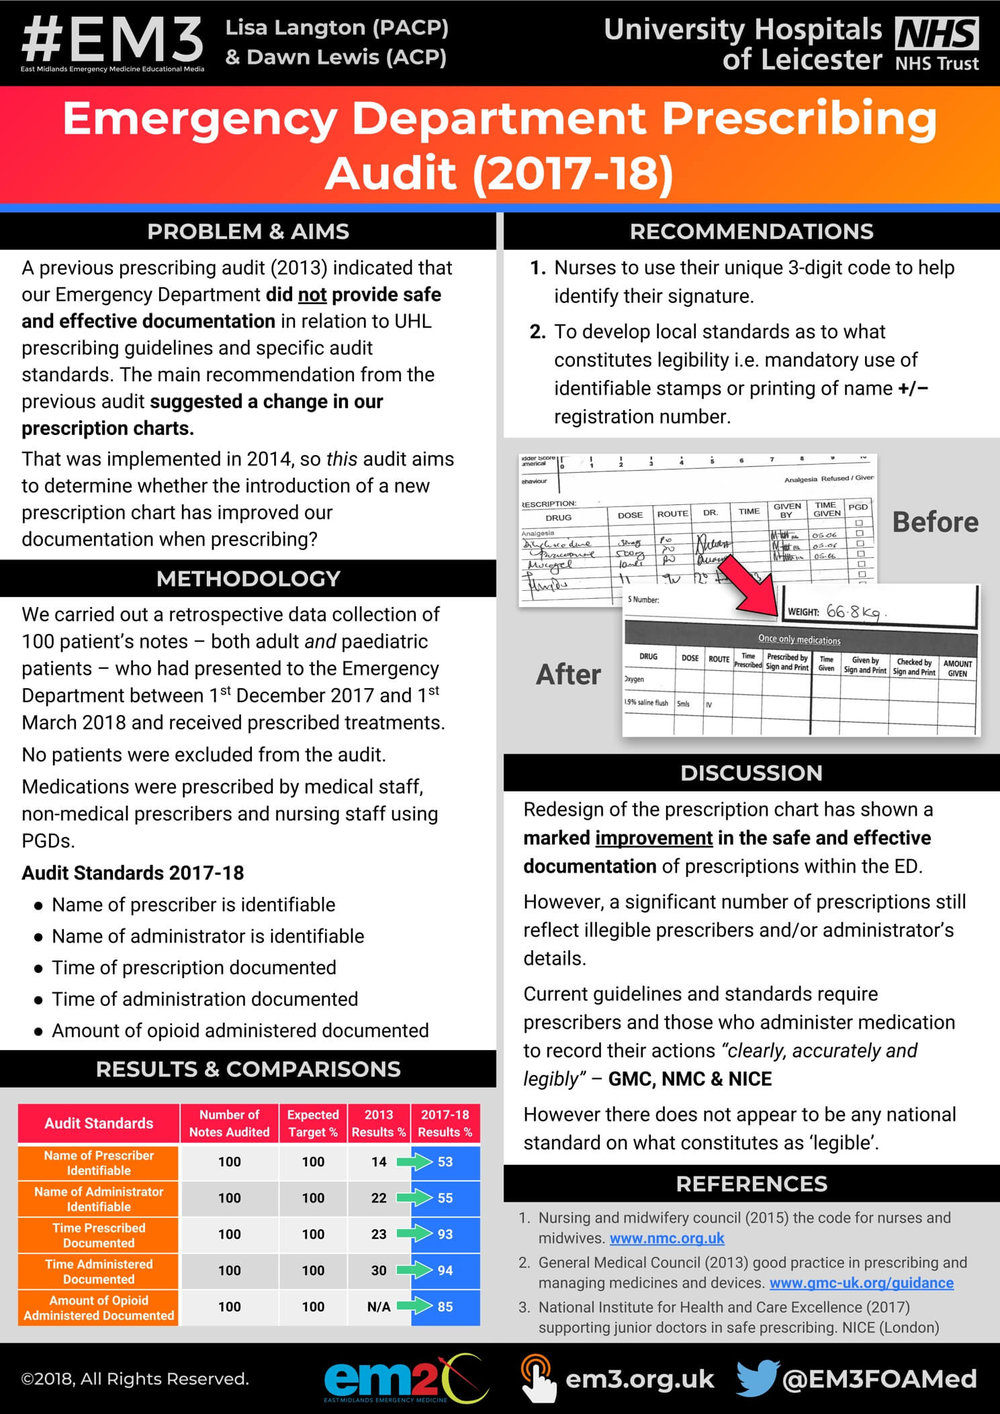 Prescribing Audit 2017-18 - EM2C poster (Lisa Langton & Dawn Lewis).jpg